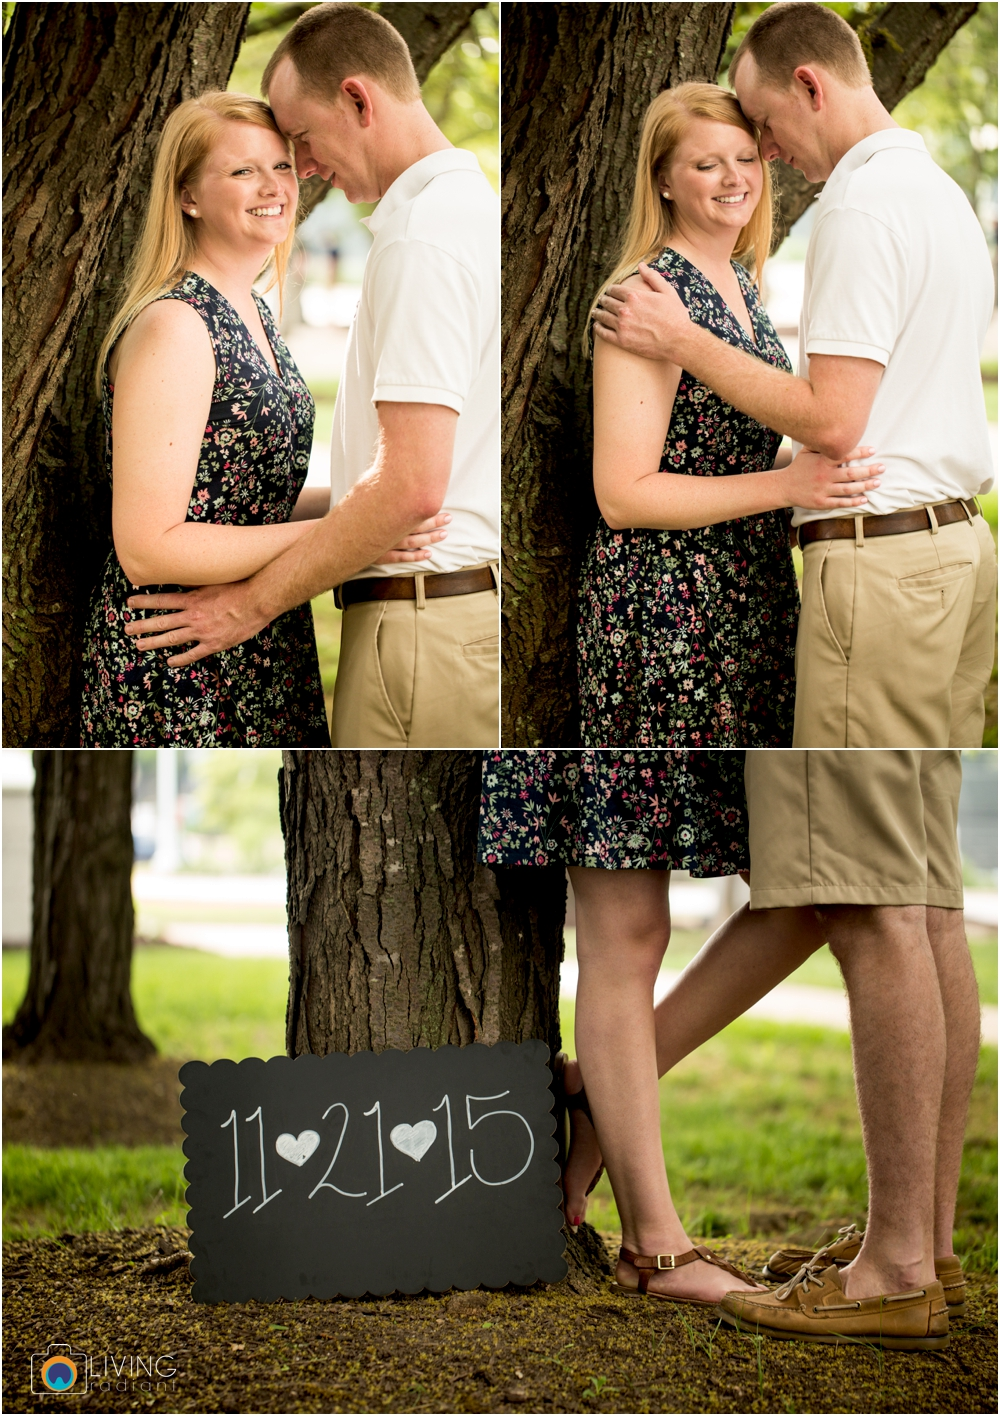 casey-clark-engaged-annapolis-downtown-naval-academy-engagement-session-living-radiant-photography-maggie-patrick-nolan-outdoor-water-boats_0008.jpg